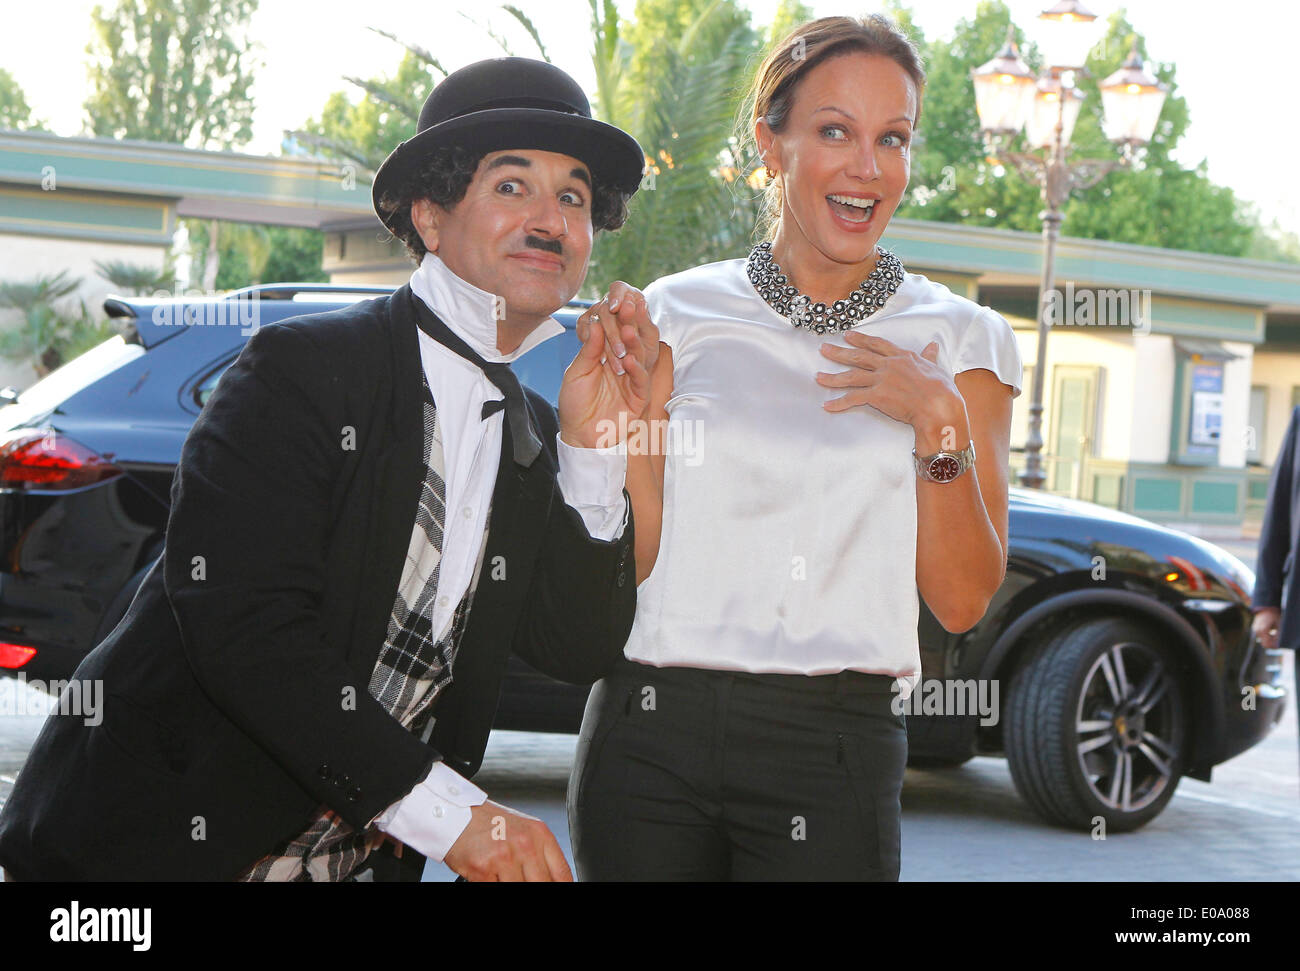 Herbolzheim, Germany - May 5, 2014: Eagles Charity Golf Cup and Gala at Golfclub Breisgau and Europa Park, Rust with Actress Sonja Kirchberger Credit:  dpa picture alliance/Alamy Live News - Stock Image